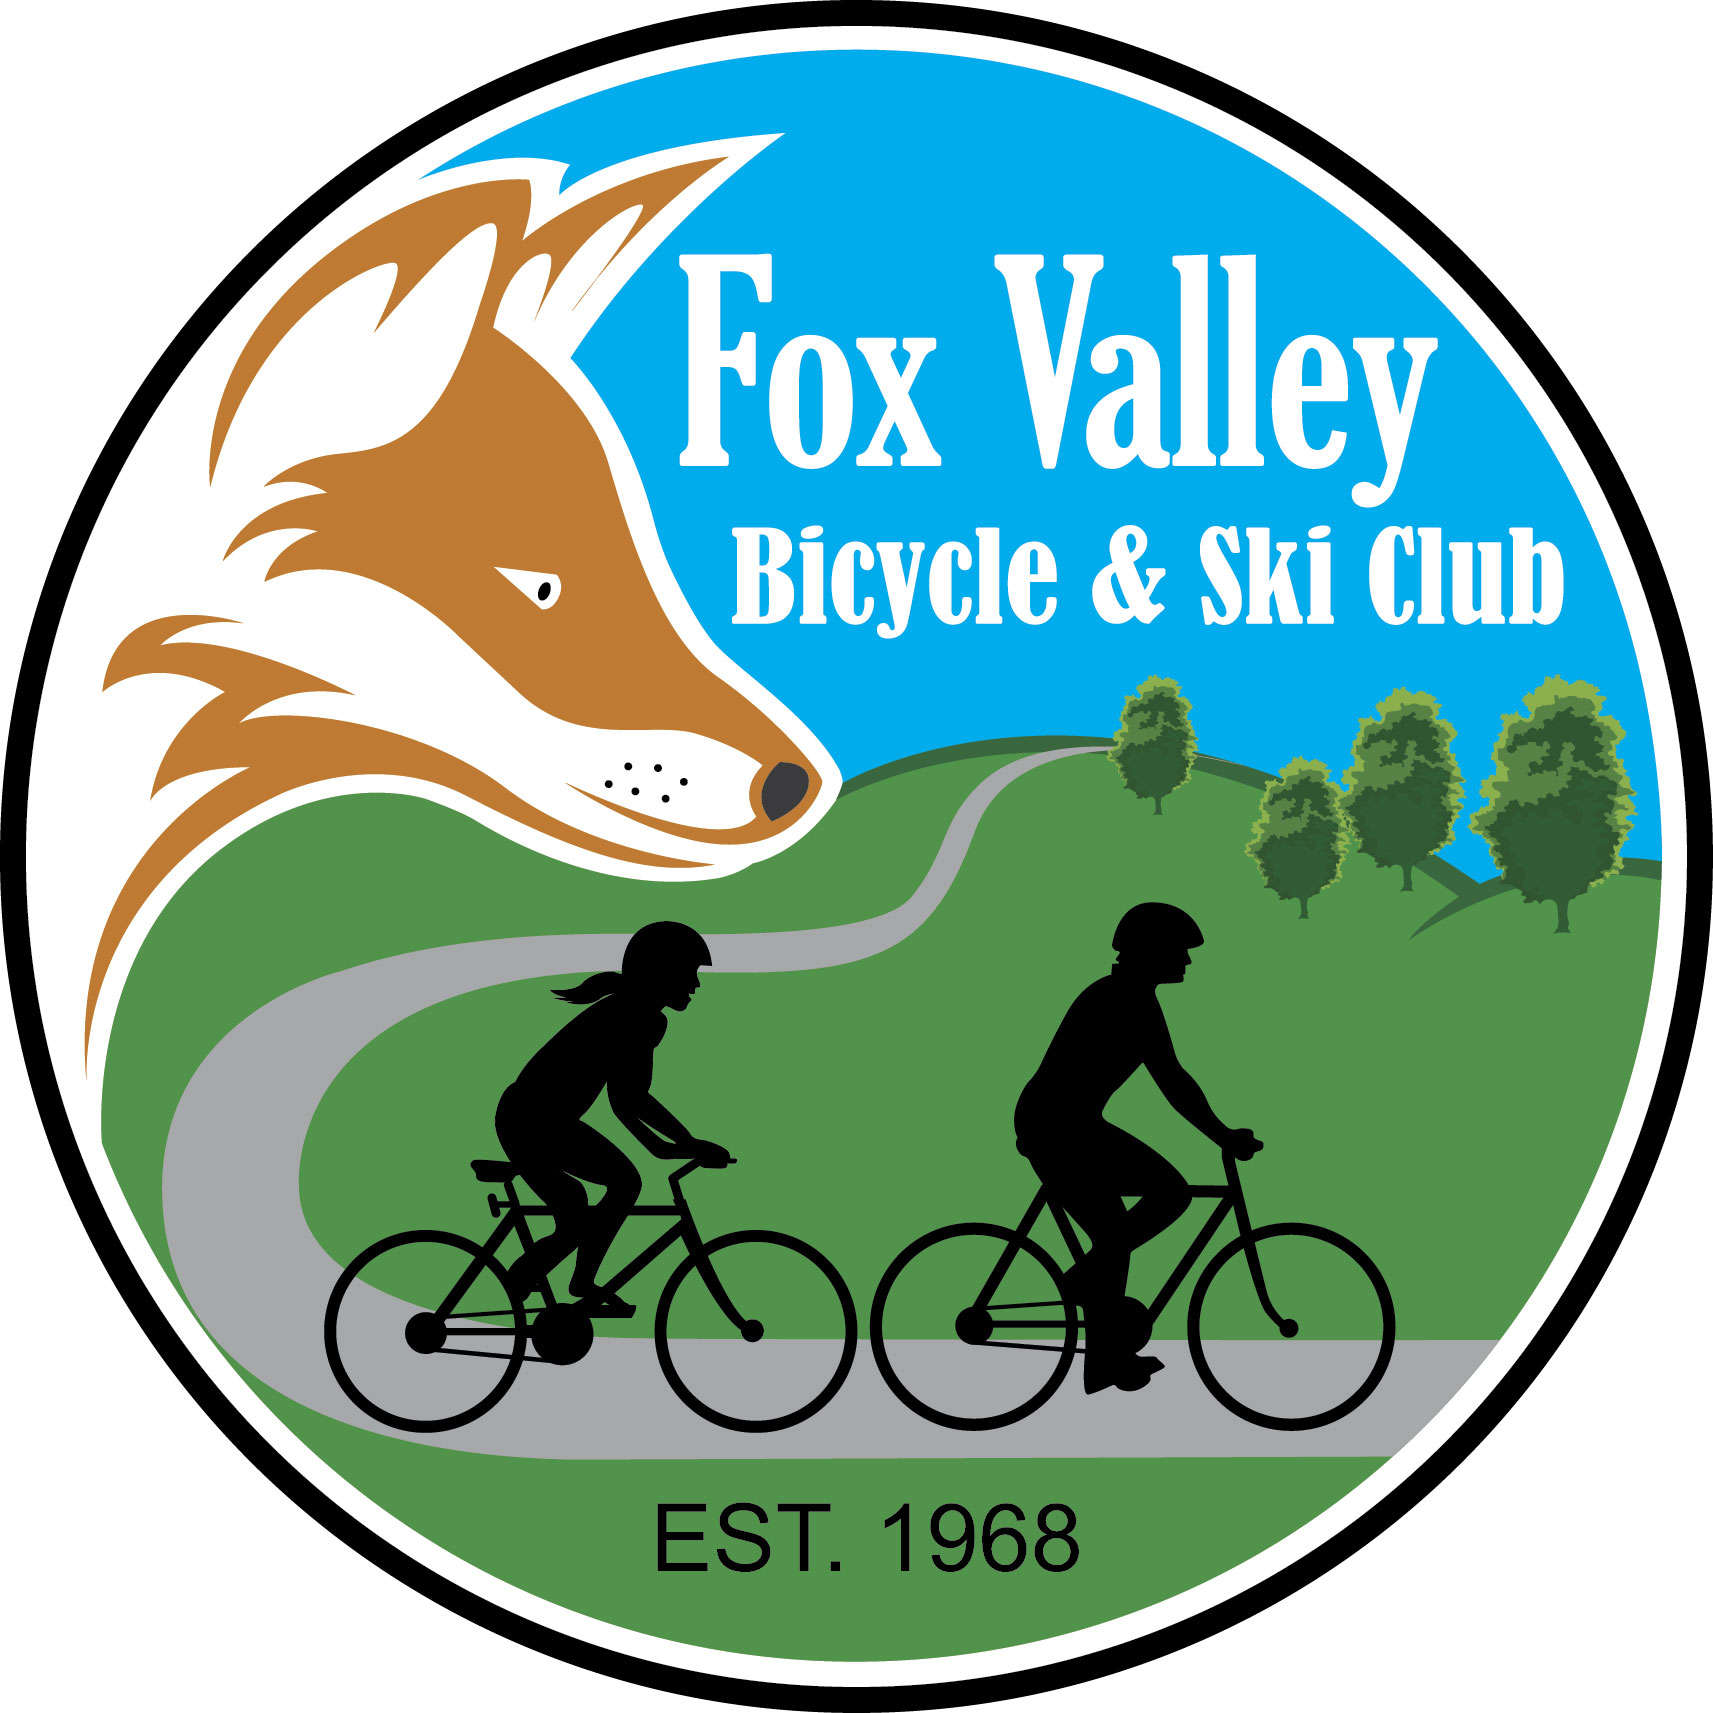 Fox Valley Bicycle & Ski Club Logo